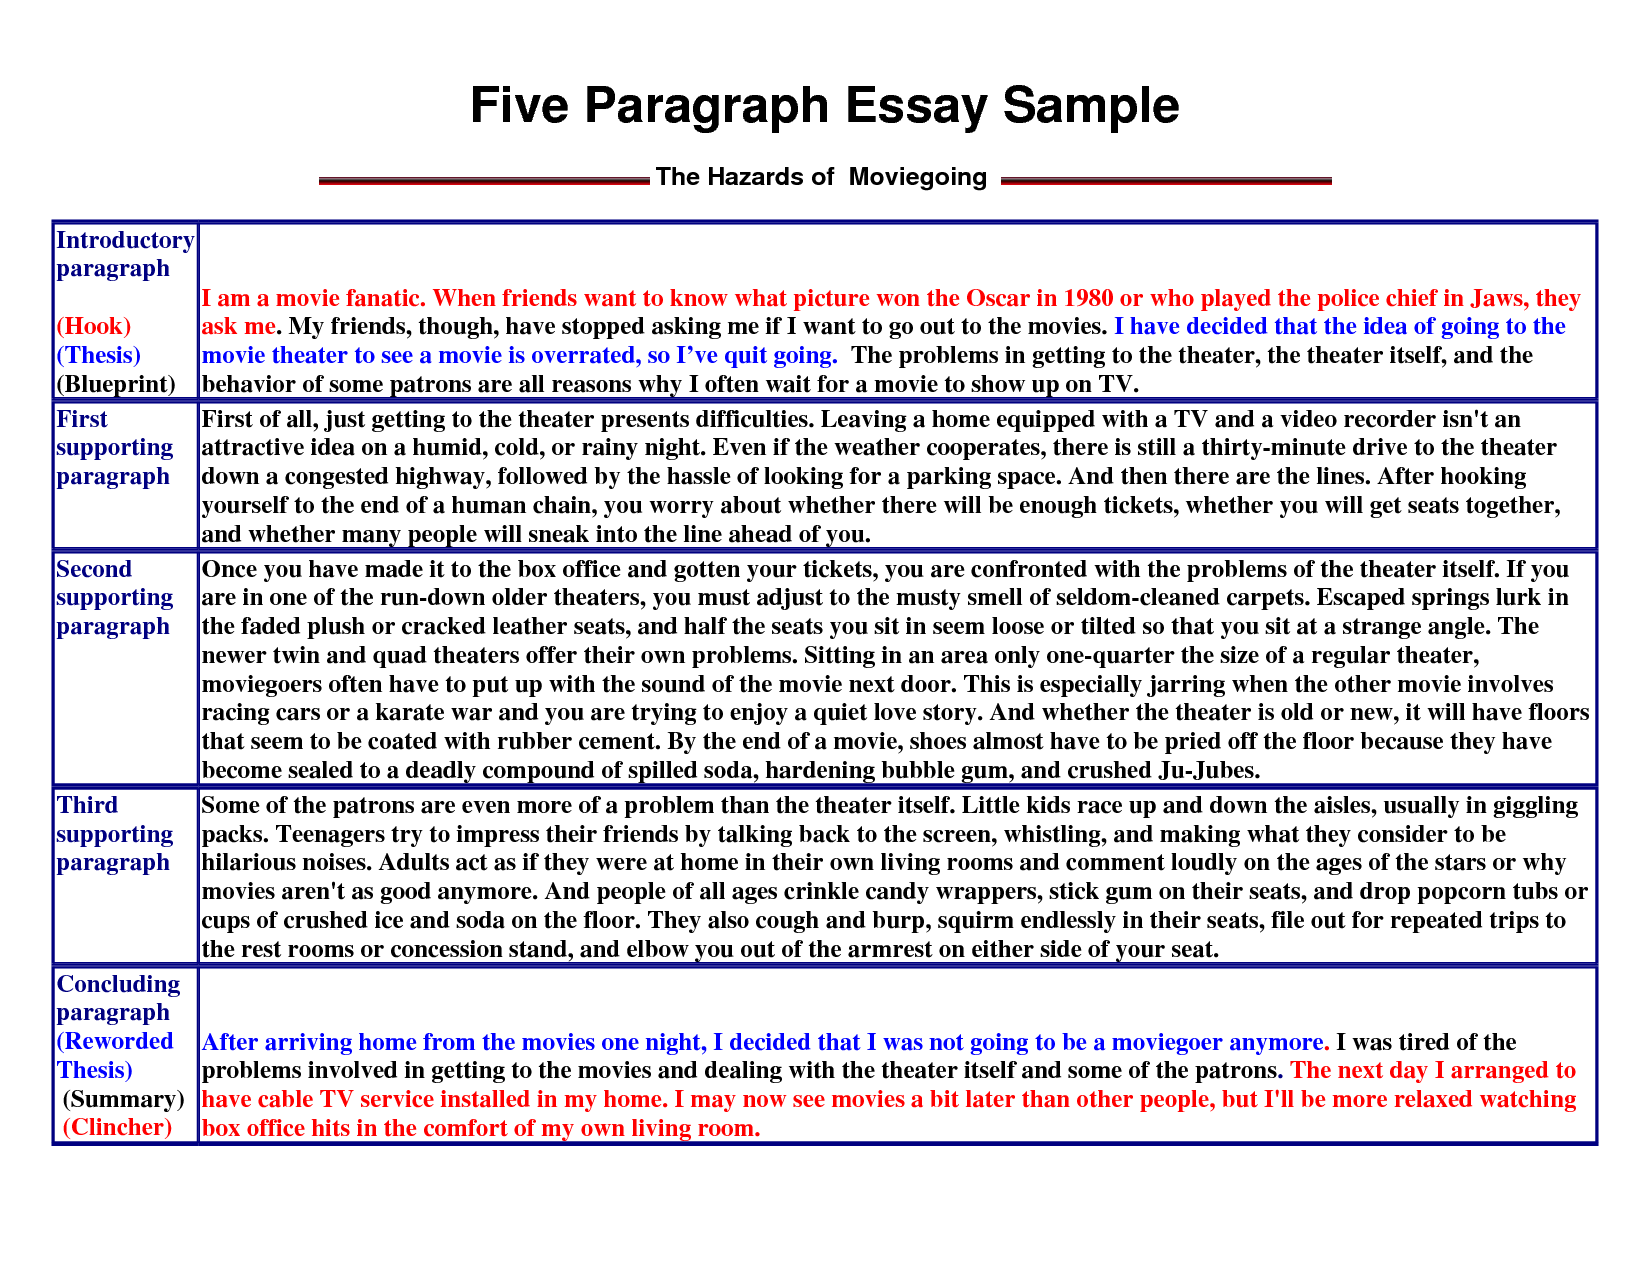 Writing an introduction paragraph for essay